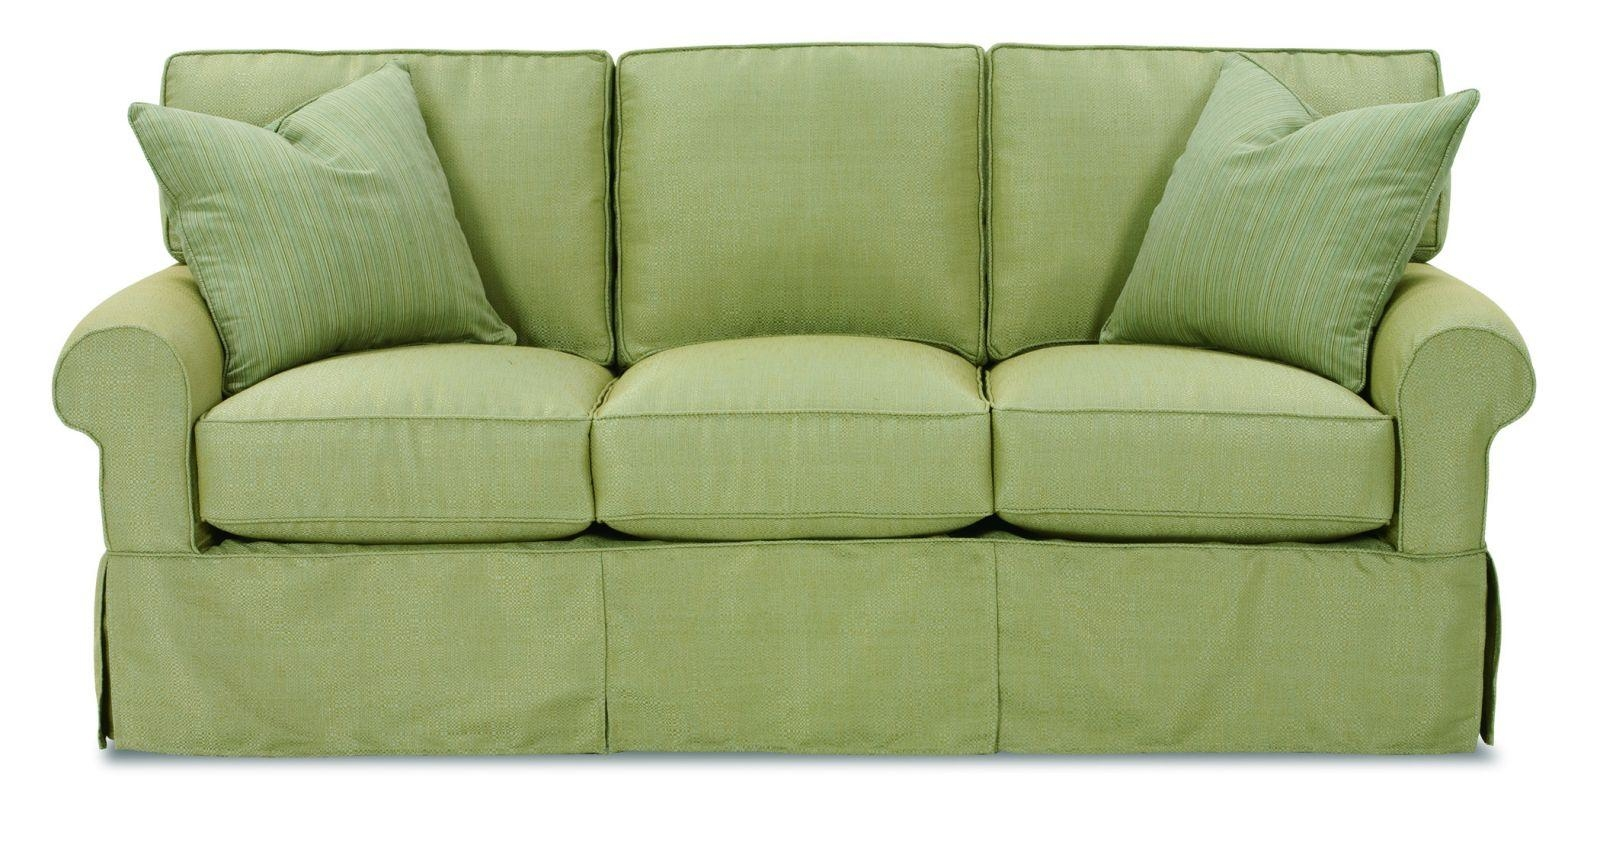 Furniture: Slipcovers For Sectional Sofa | 3 Cushion Sofa With Regard To Slipcovers For 3 Cushion Sofas (Photo 6 of 20)